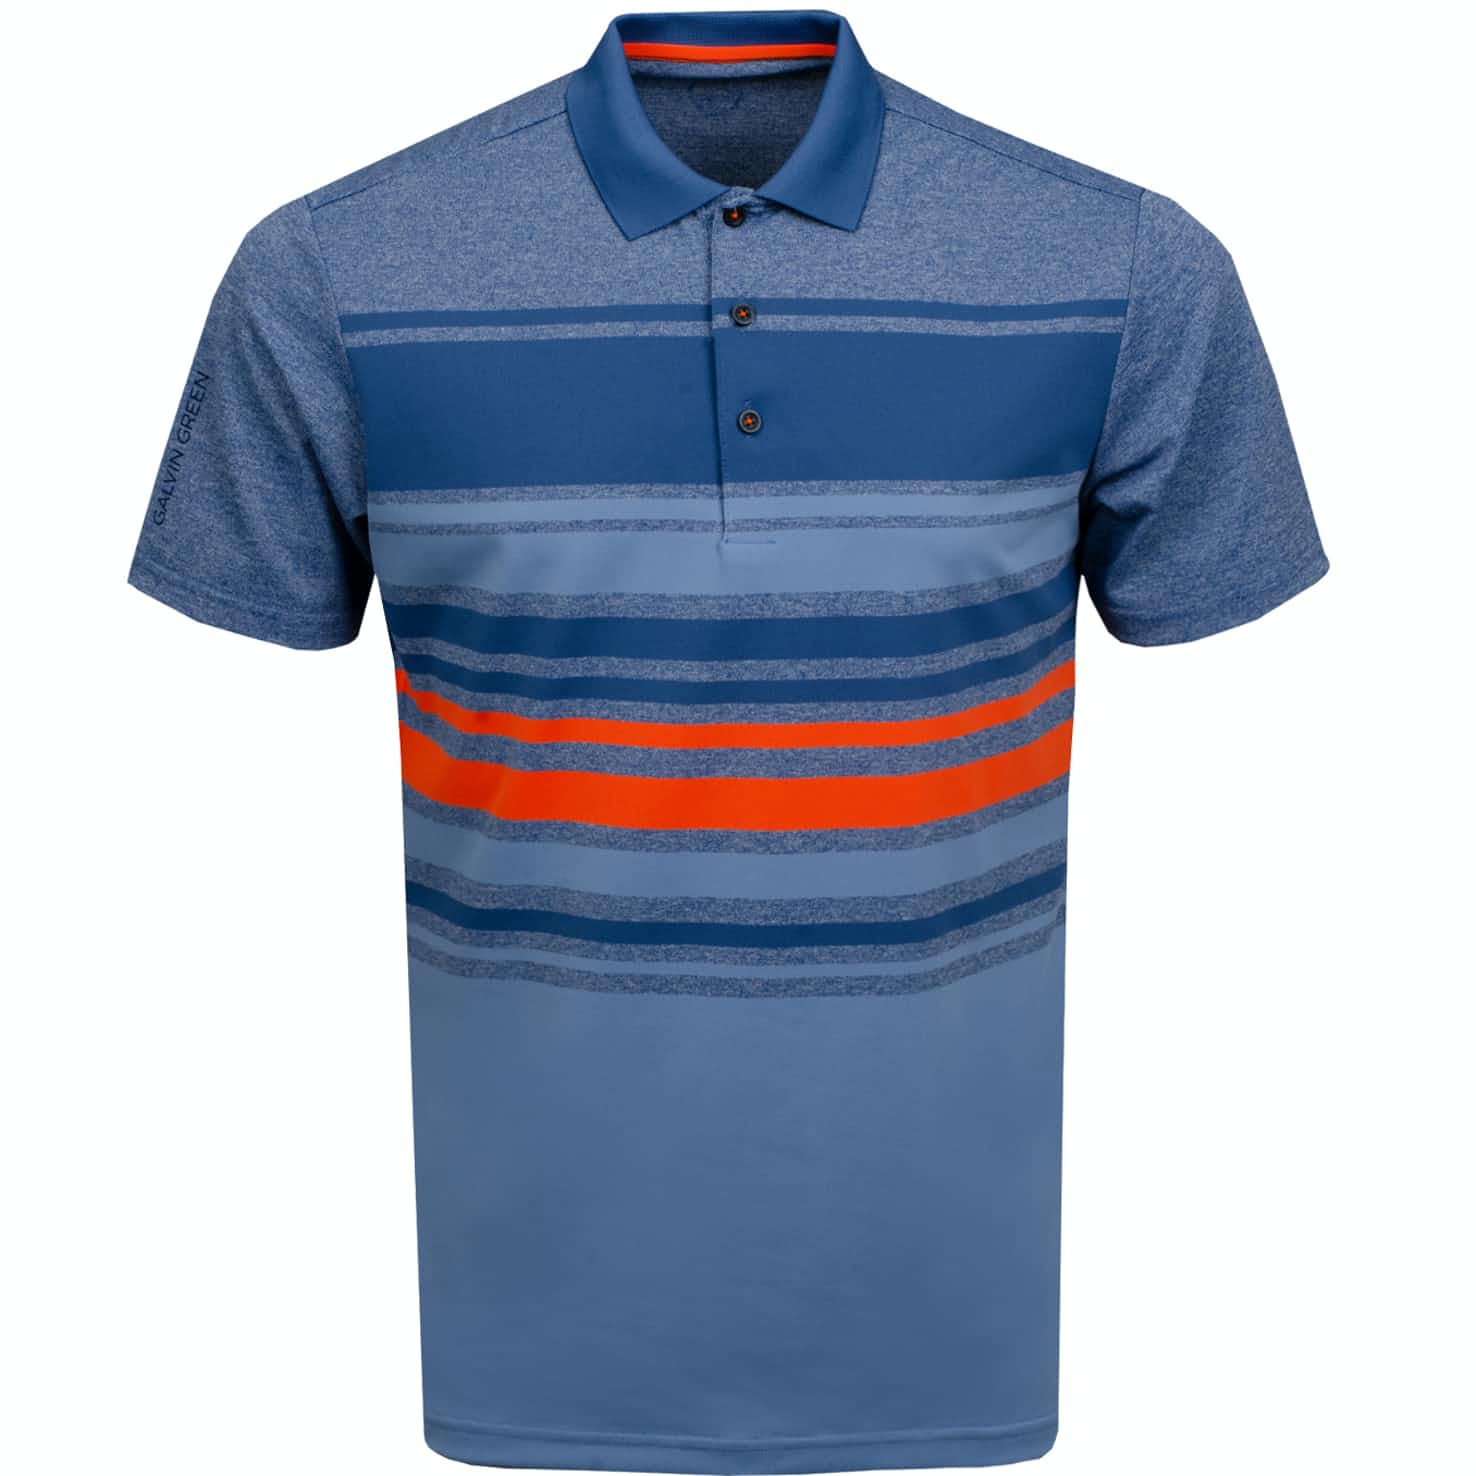 Miguel Ventil8+ Polo Ensign Blue/Faded Denim - AW19